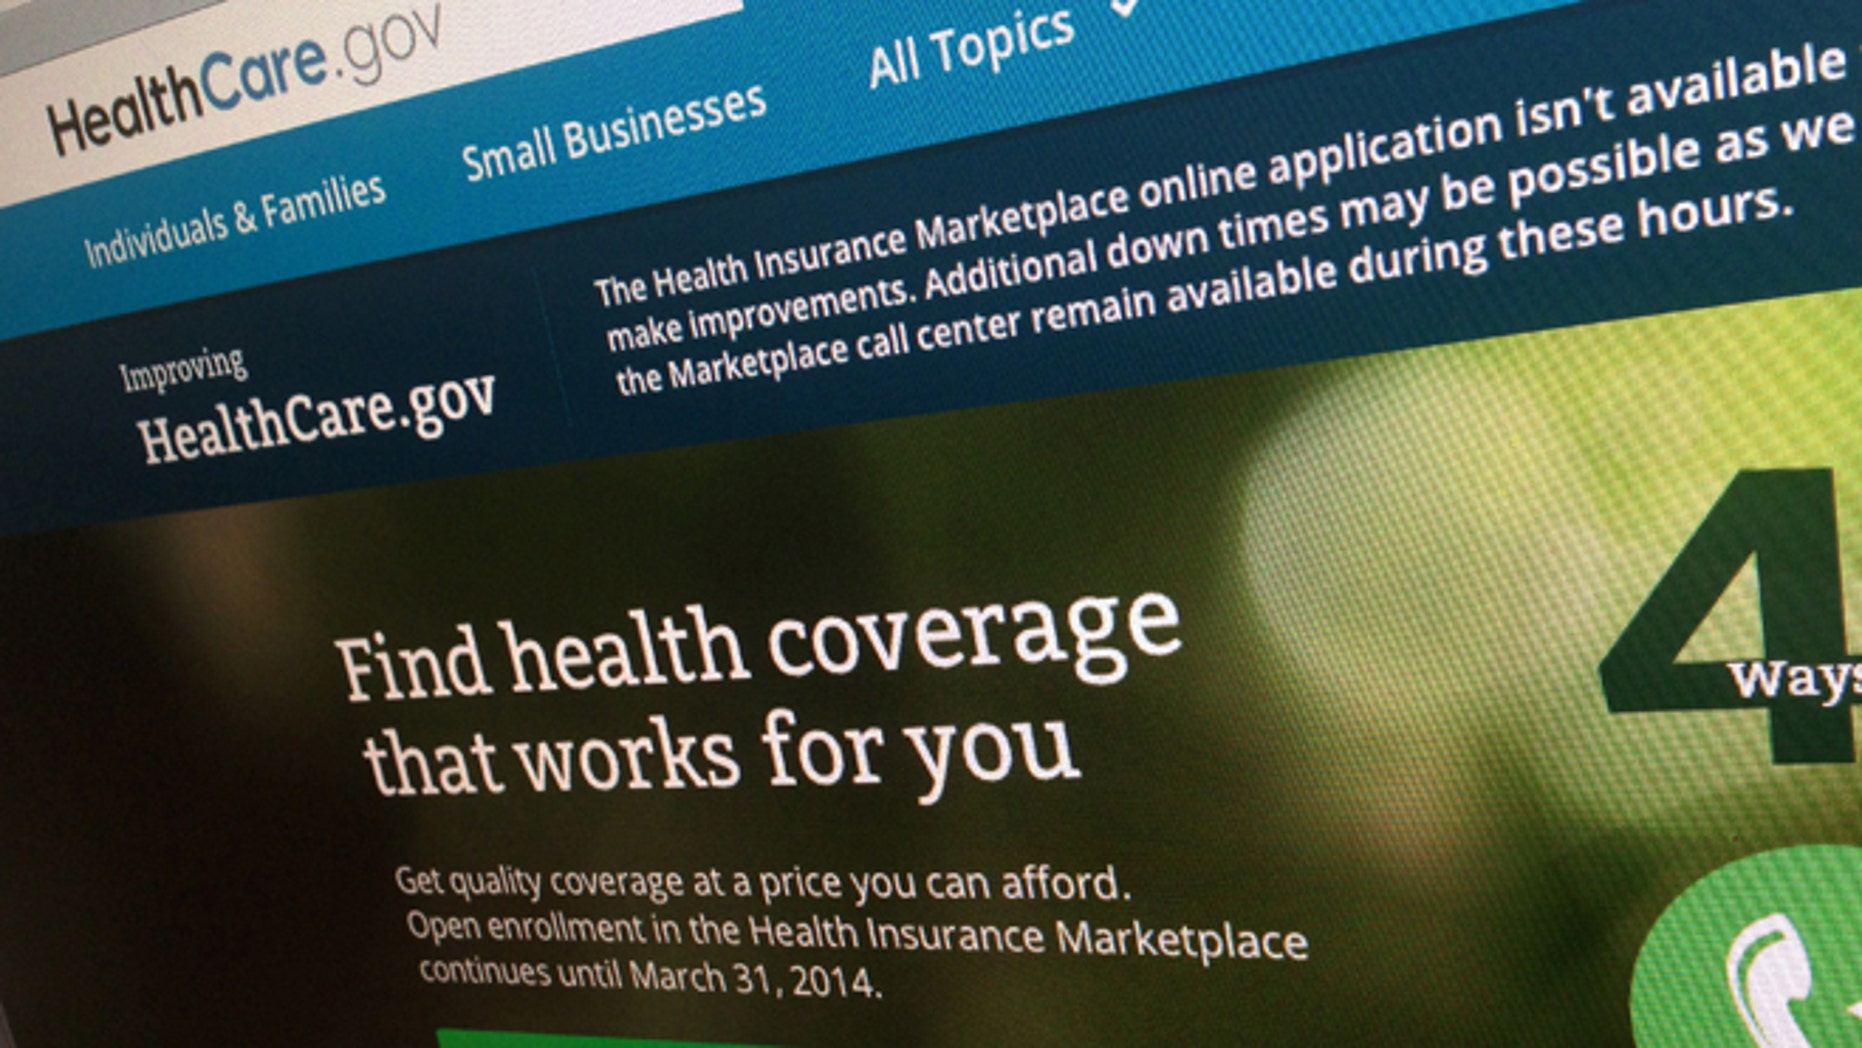 Obamacare preliminary numbers do show a drop in enrollment but experts disagree about whether the president's actions are directly responsible.